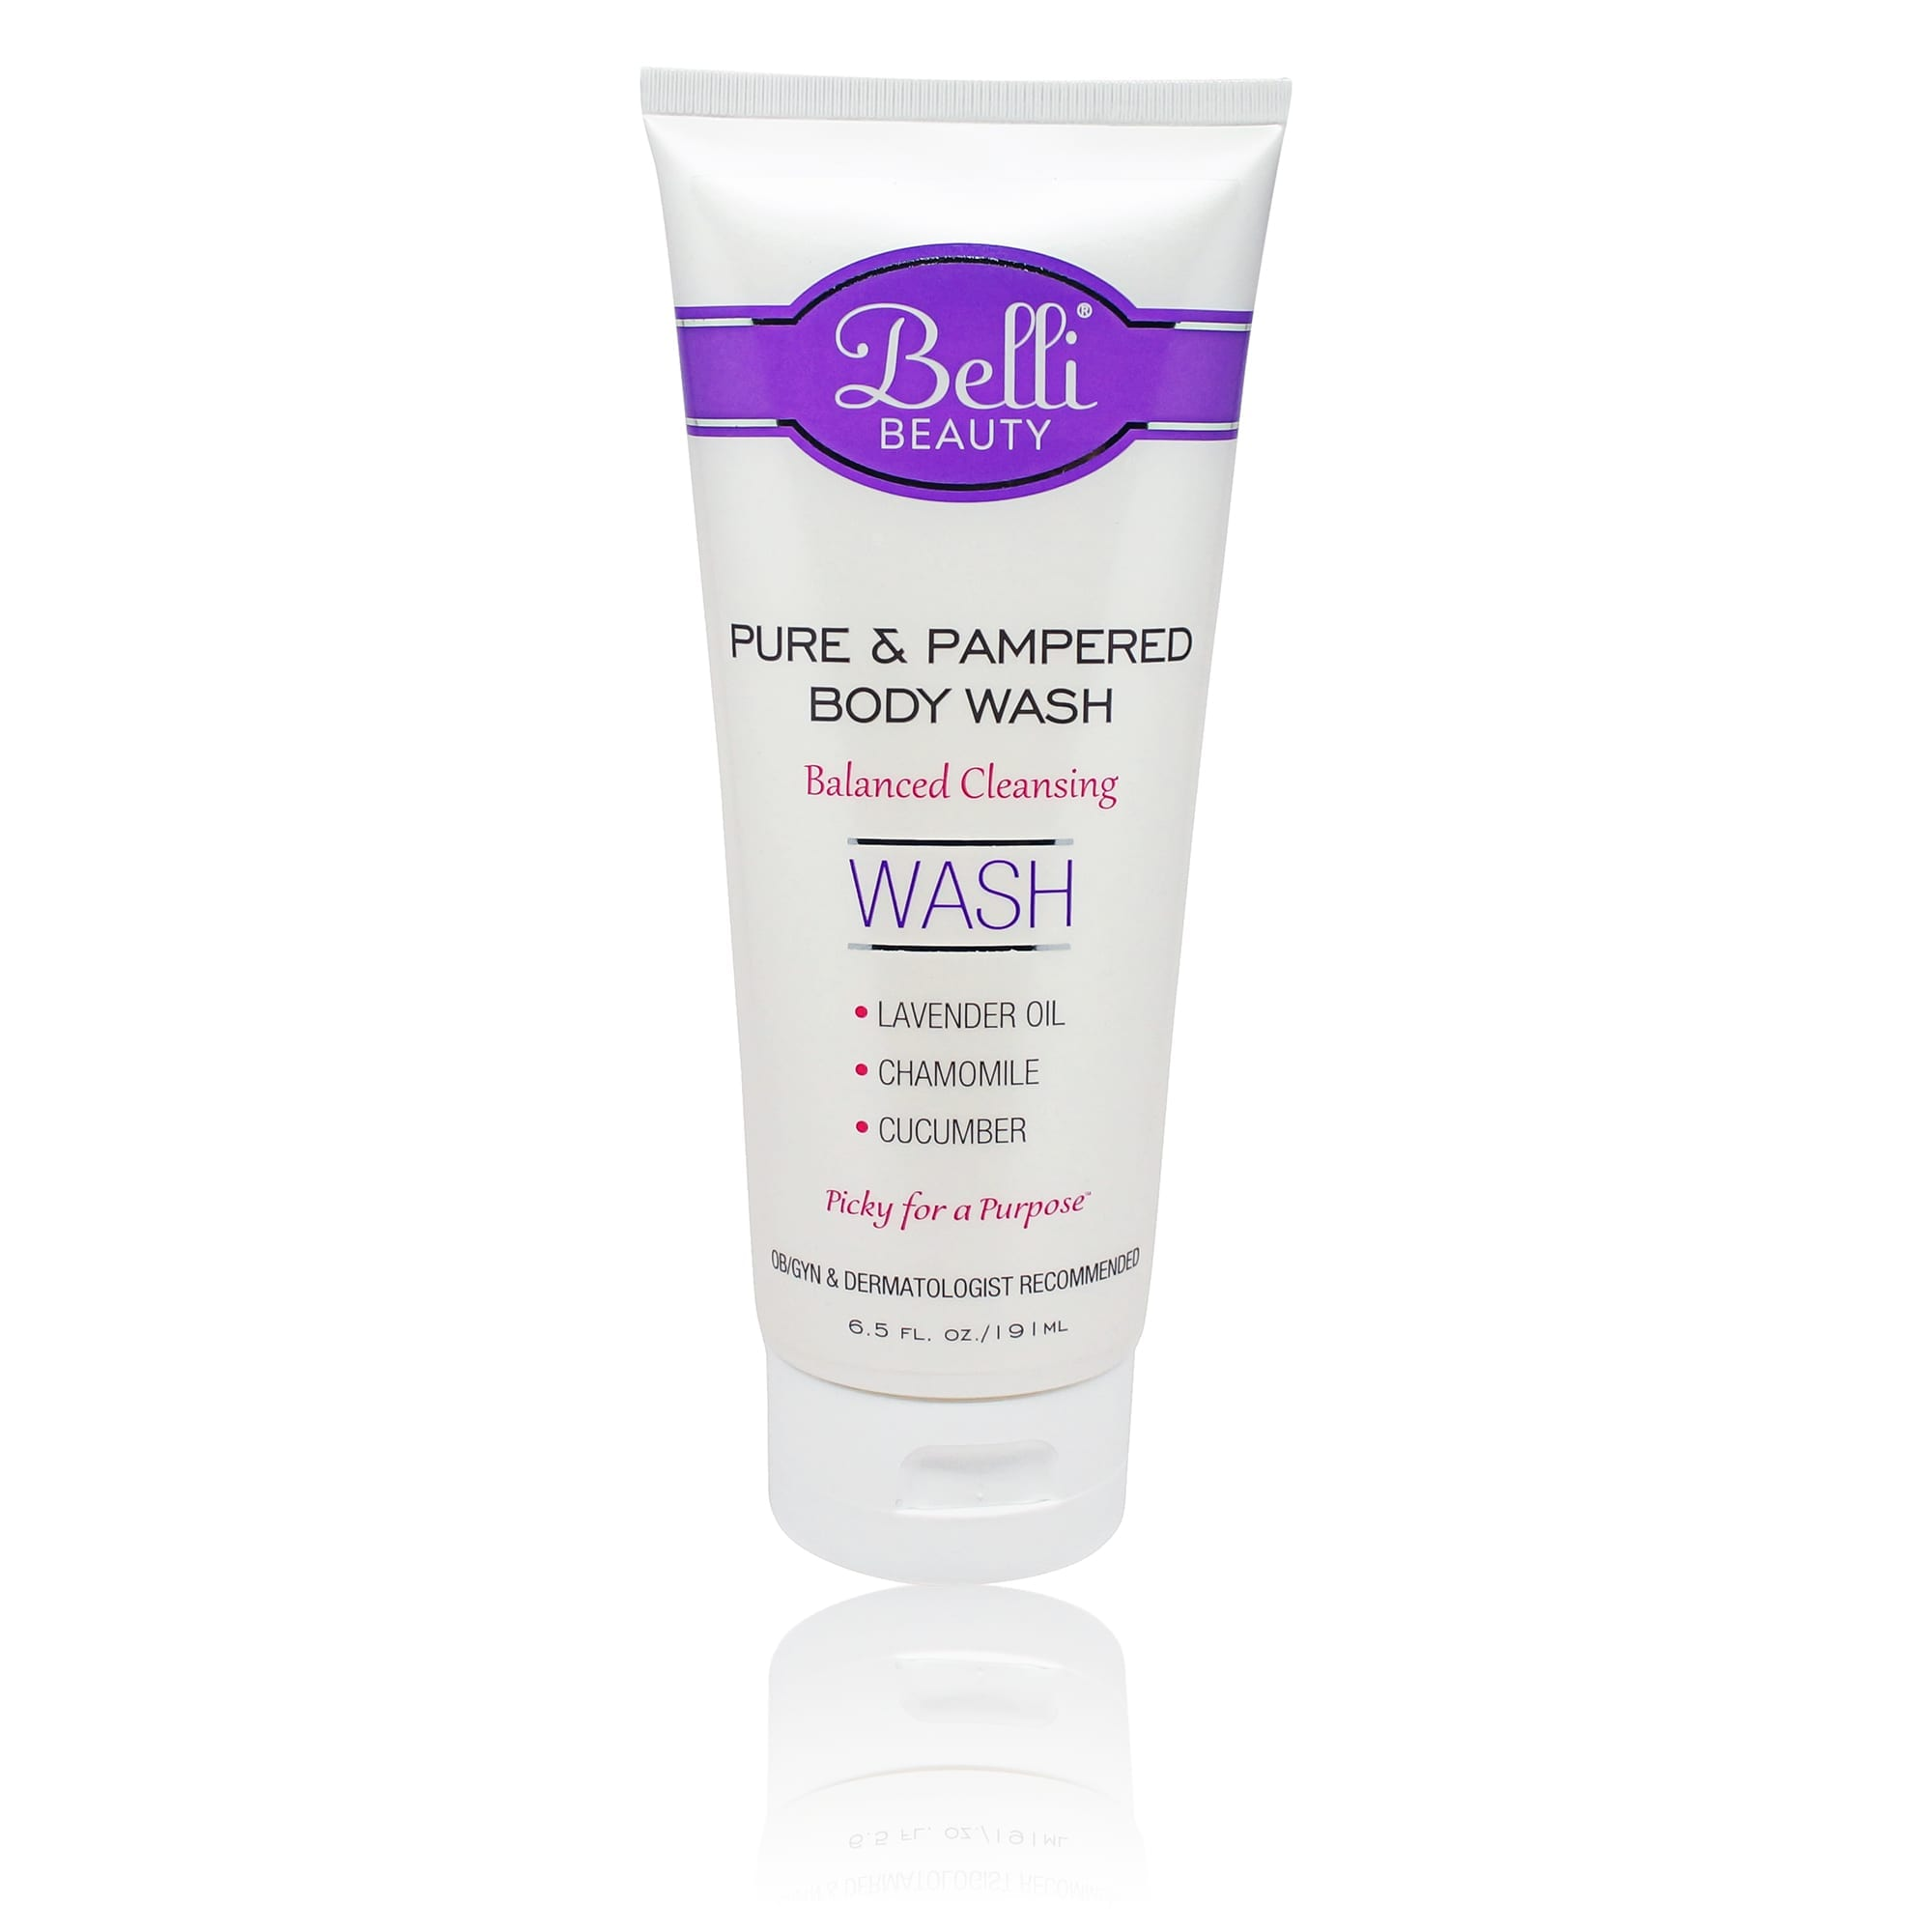 Belli Pure and Pampered Body Wash 6.5 Oz